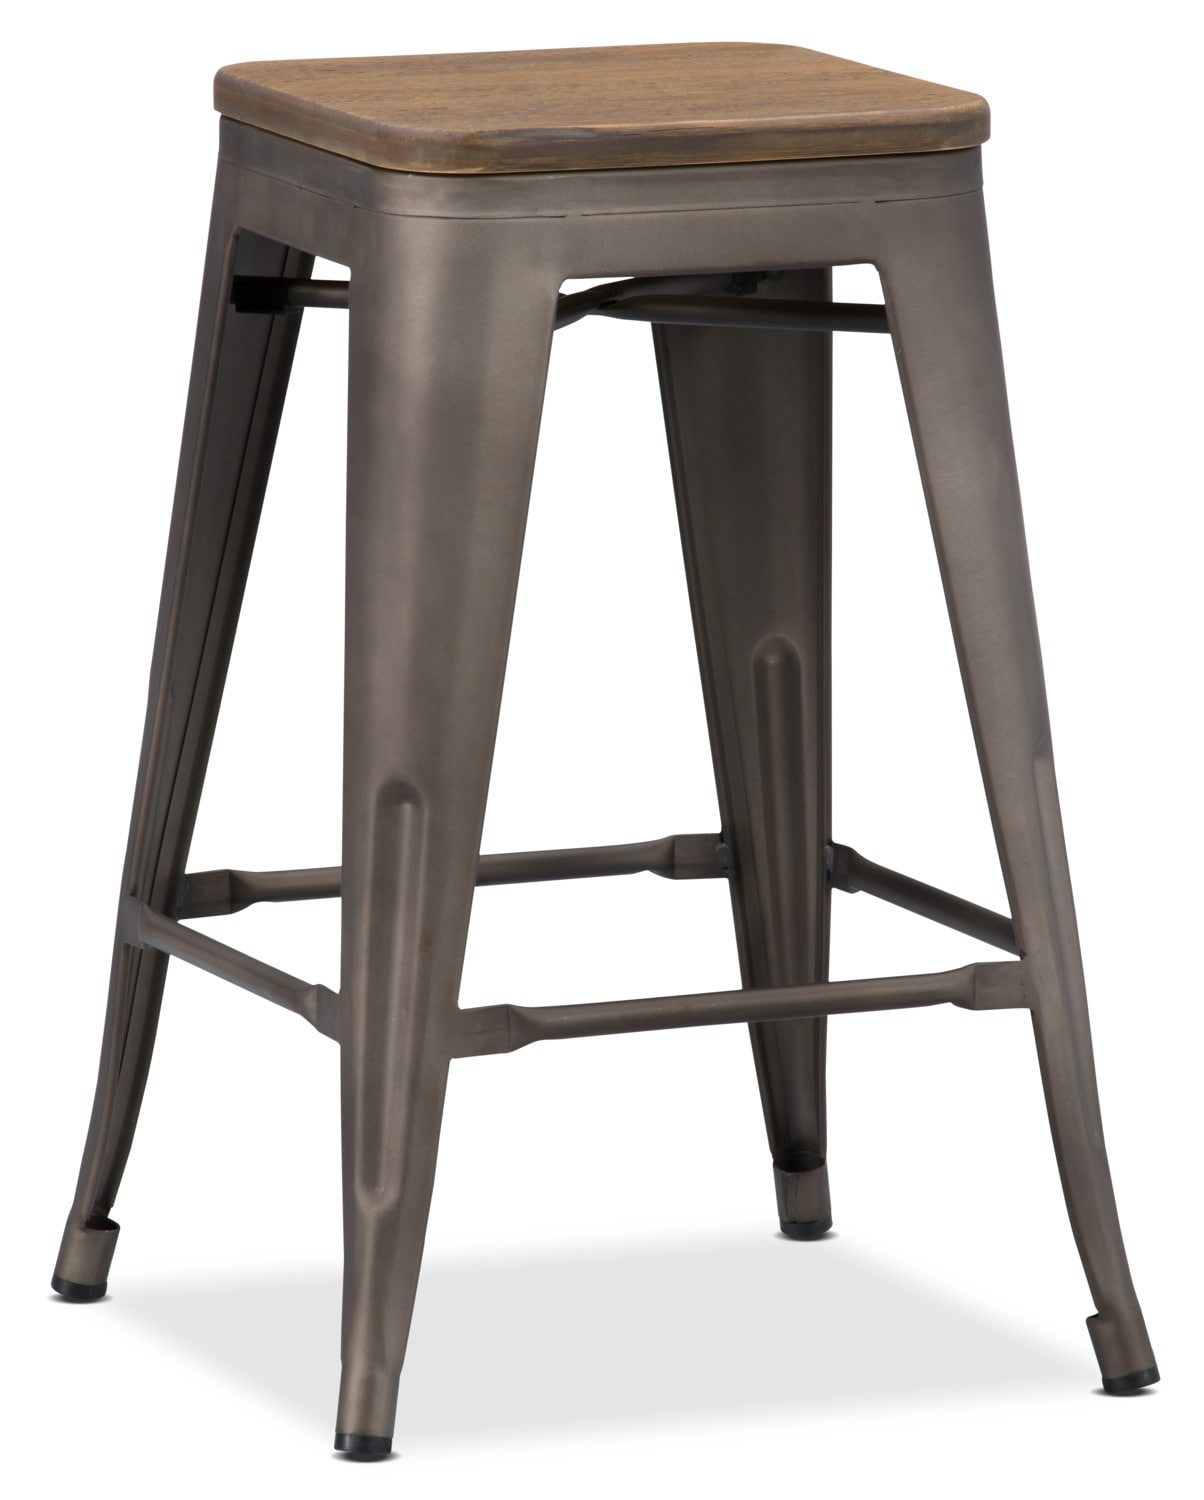 Dining Room Furniture - Peyton Counter-Height Dining Stool